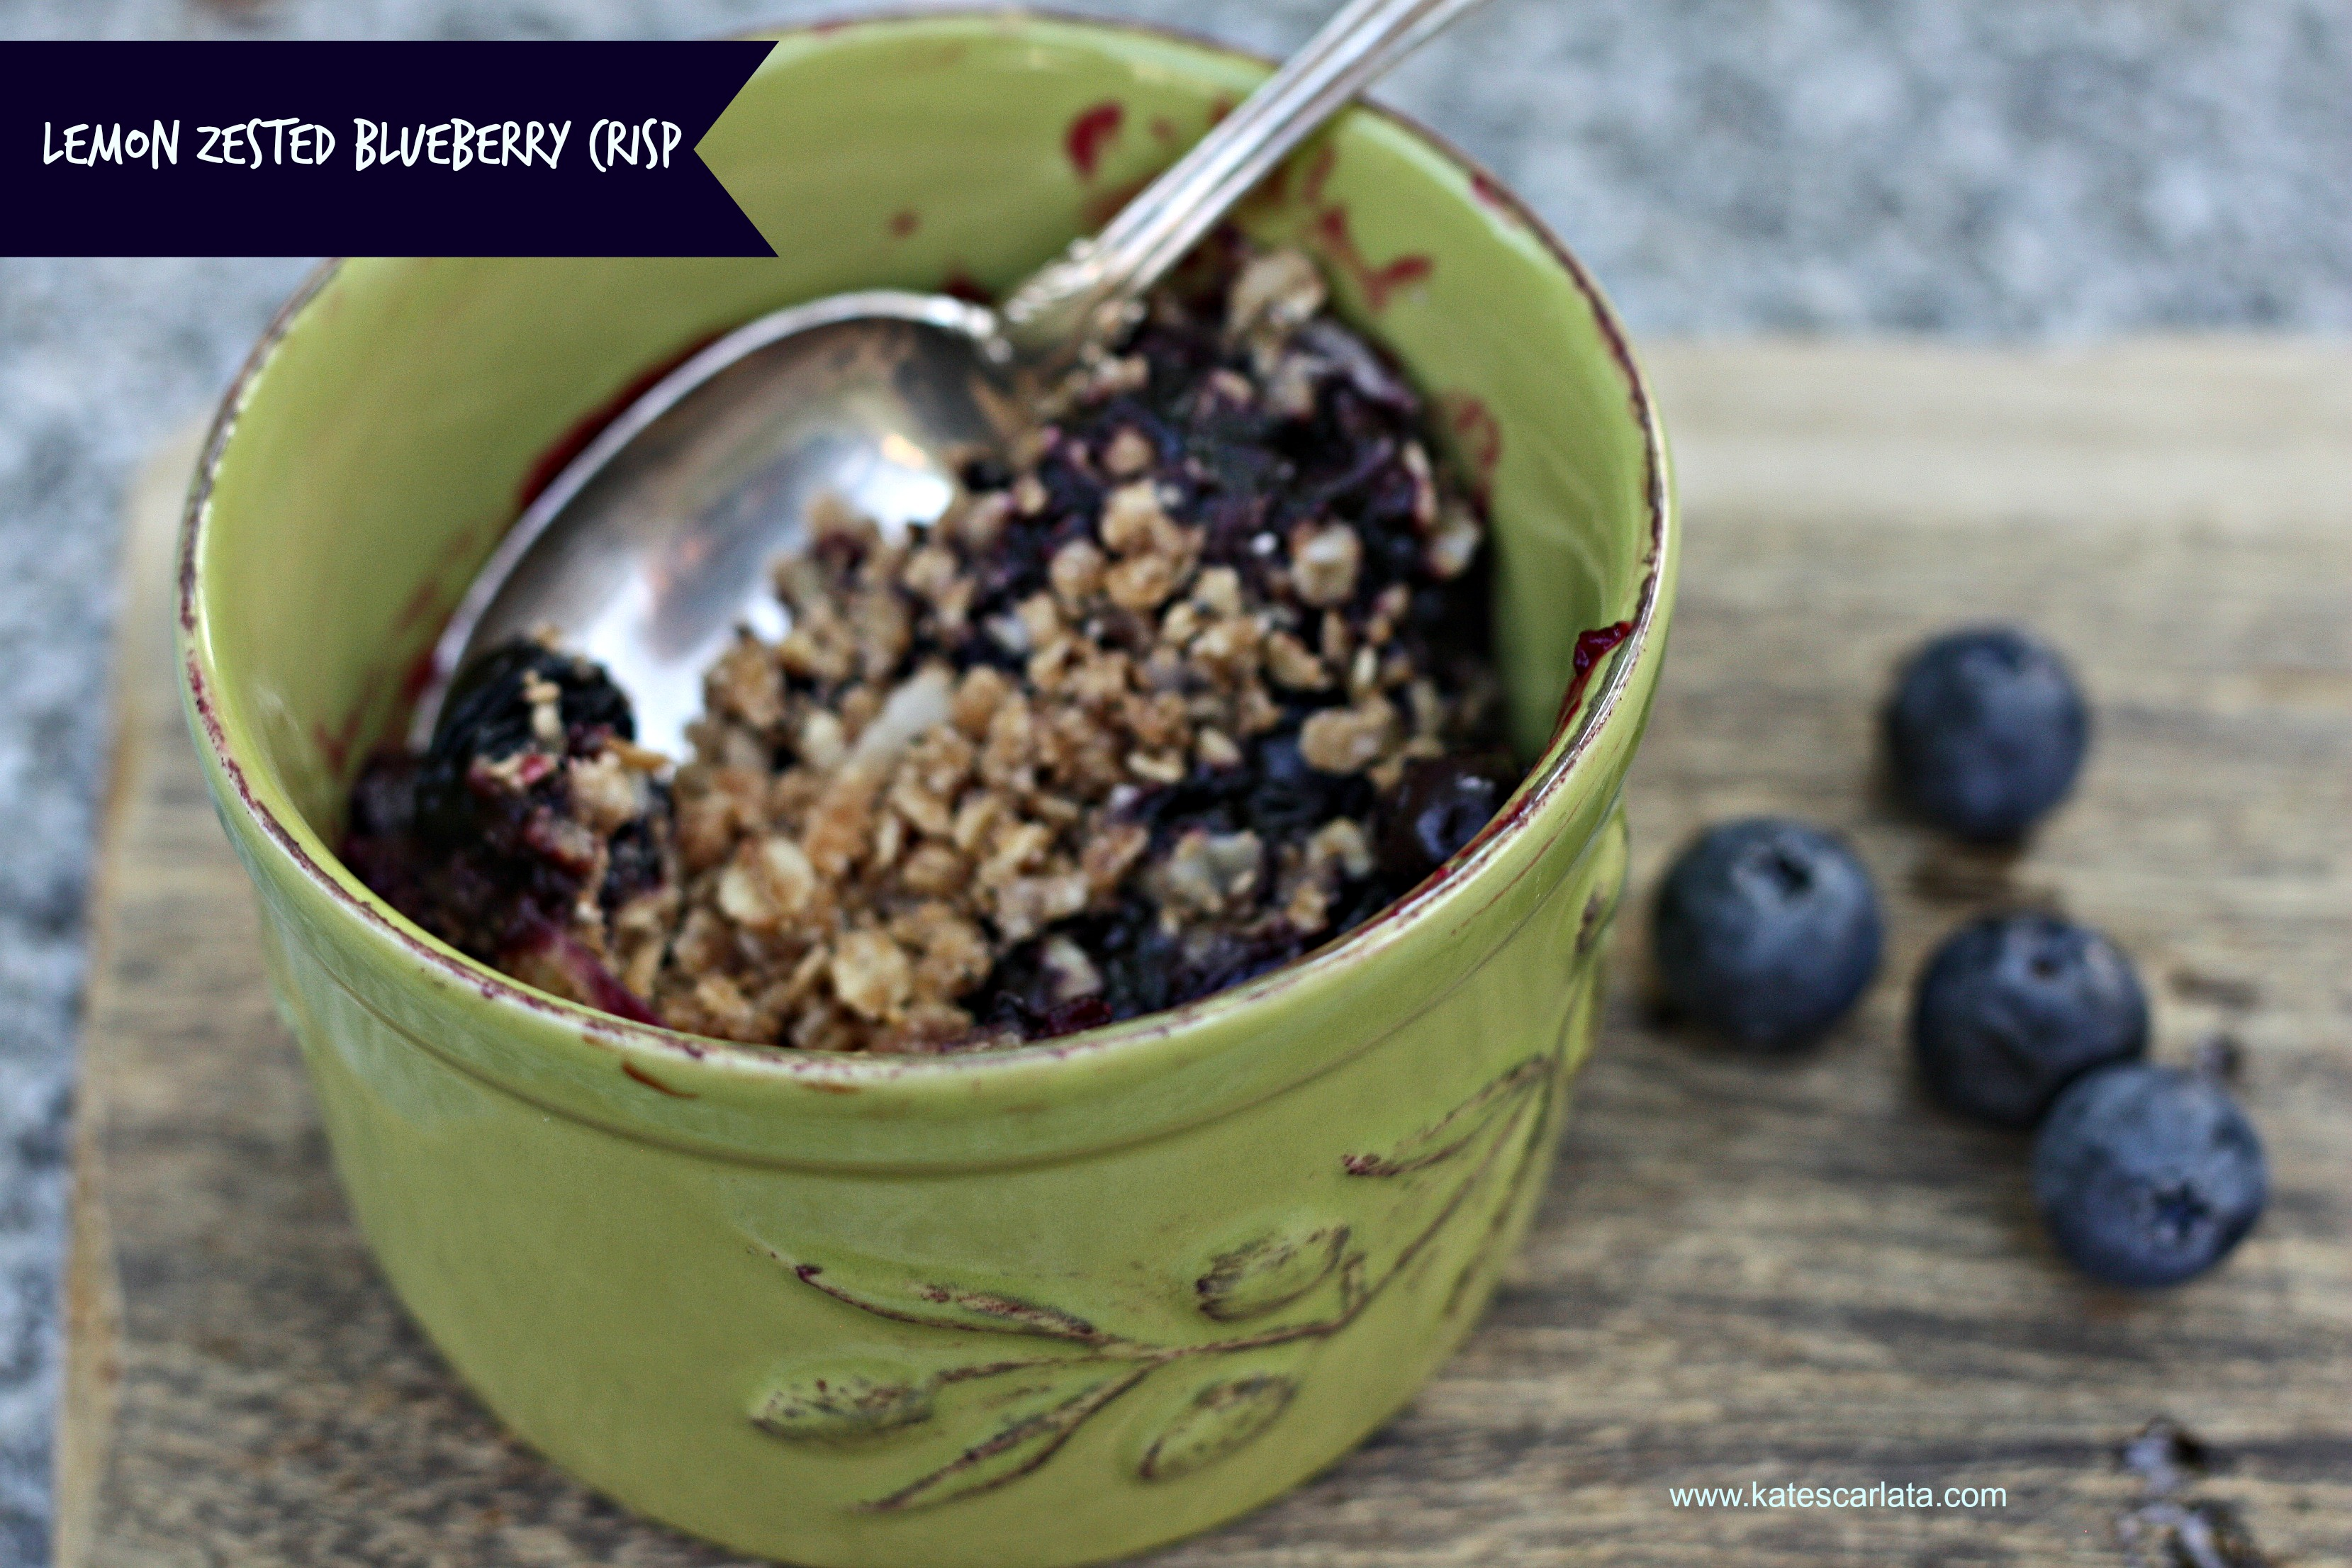 blueberry zested crisp ready to eat